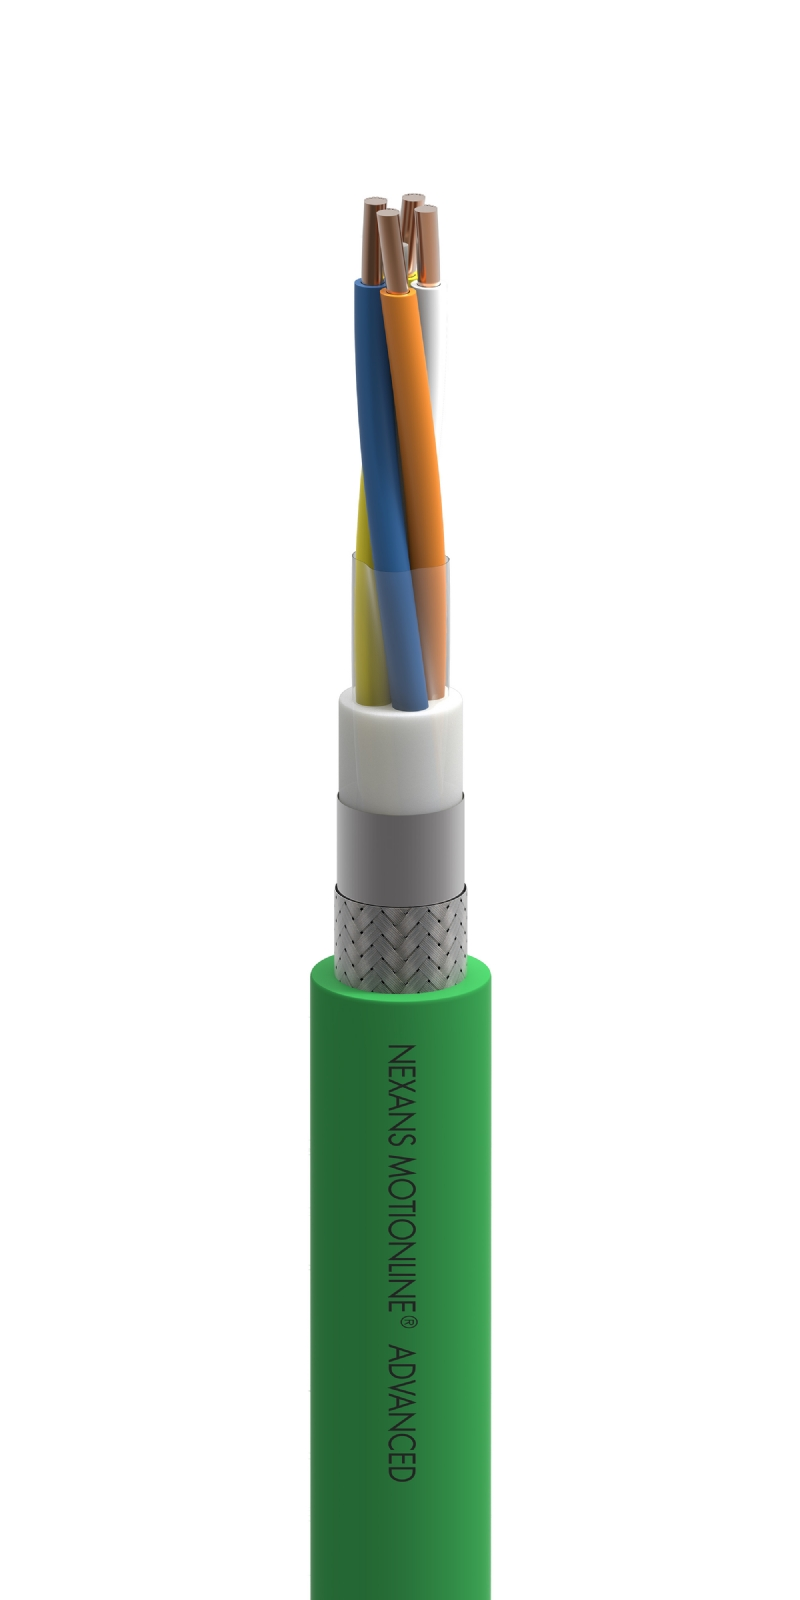 MOTIONLINE® PROFINET E INDUSTRIAL ETHERNET CABLES